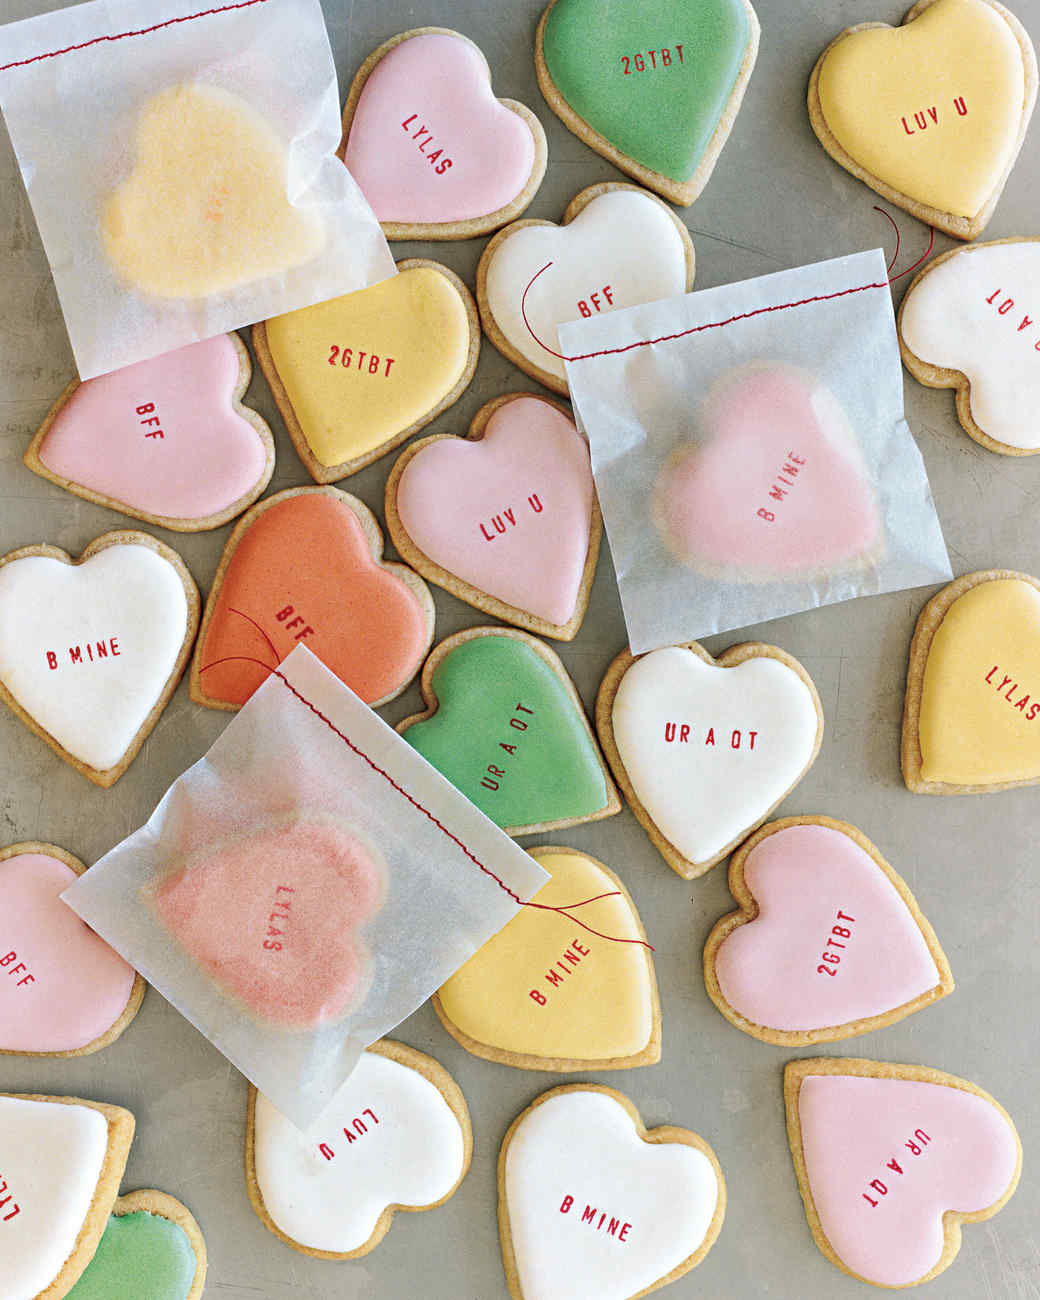 25 Heart-Shaped Treats to Send Your Valentine | Martha Stewart